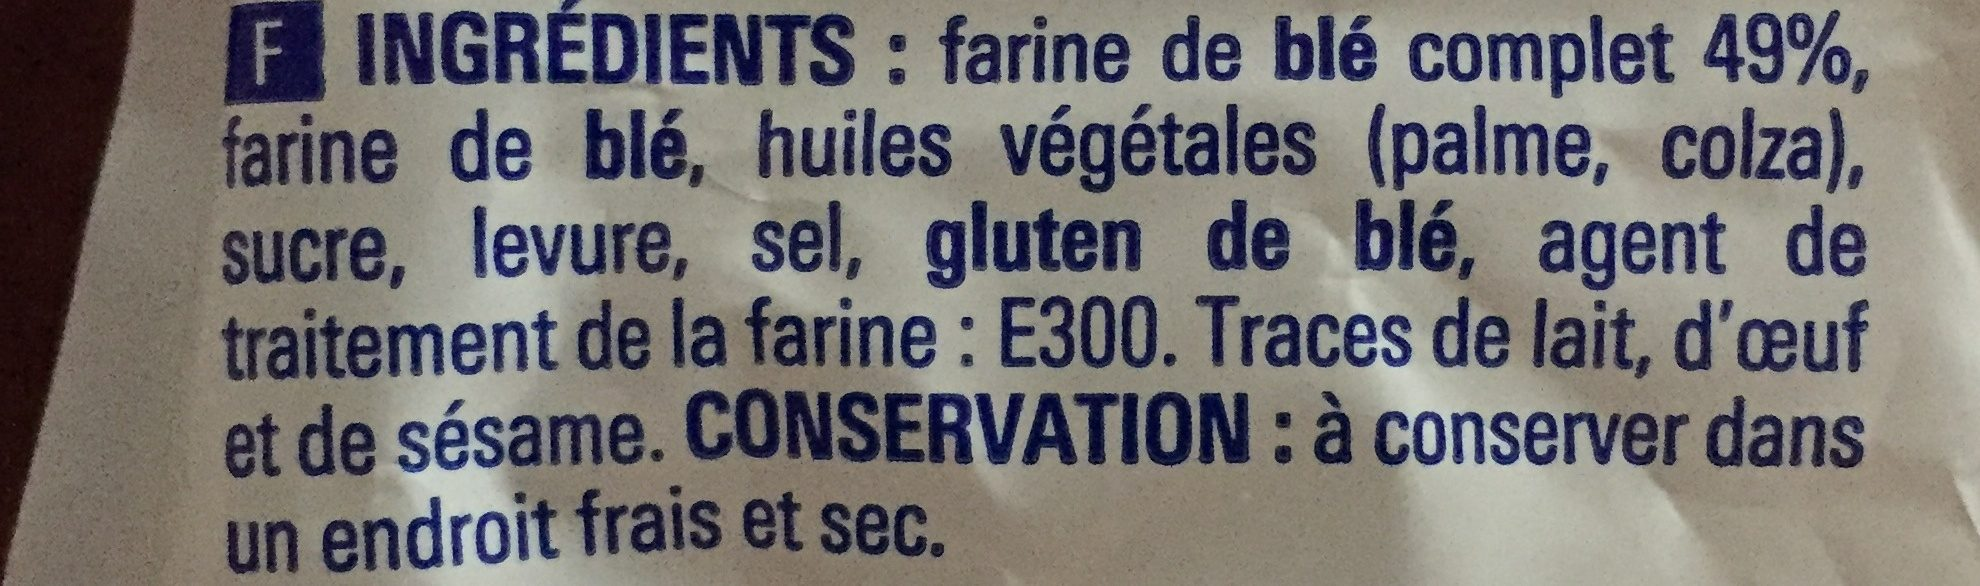 PAINS GRILLES BLE COMPLET - Ingredients